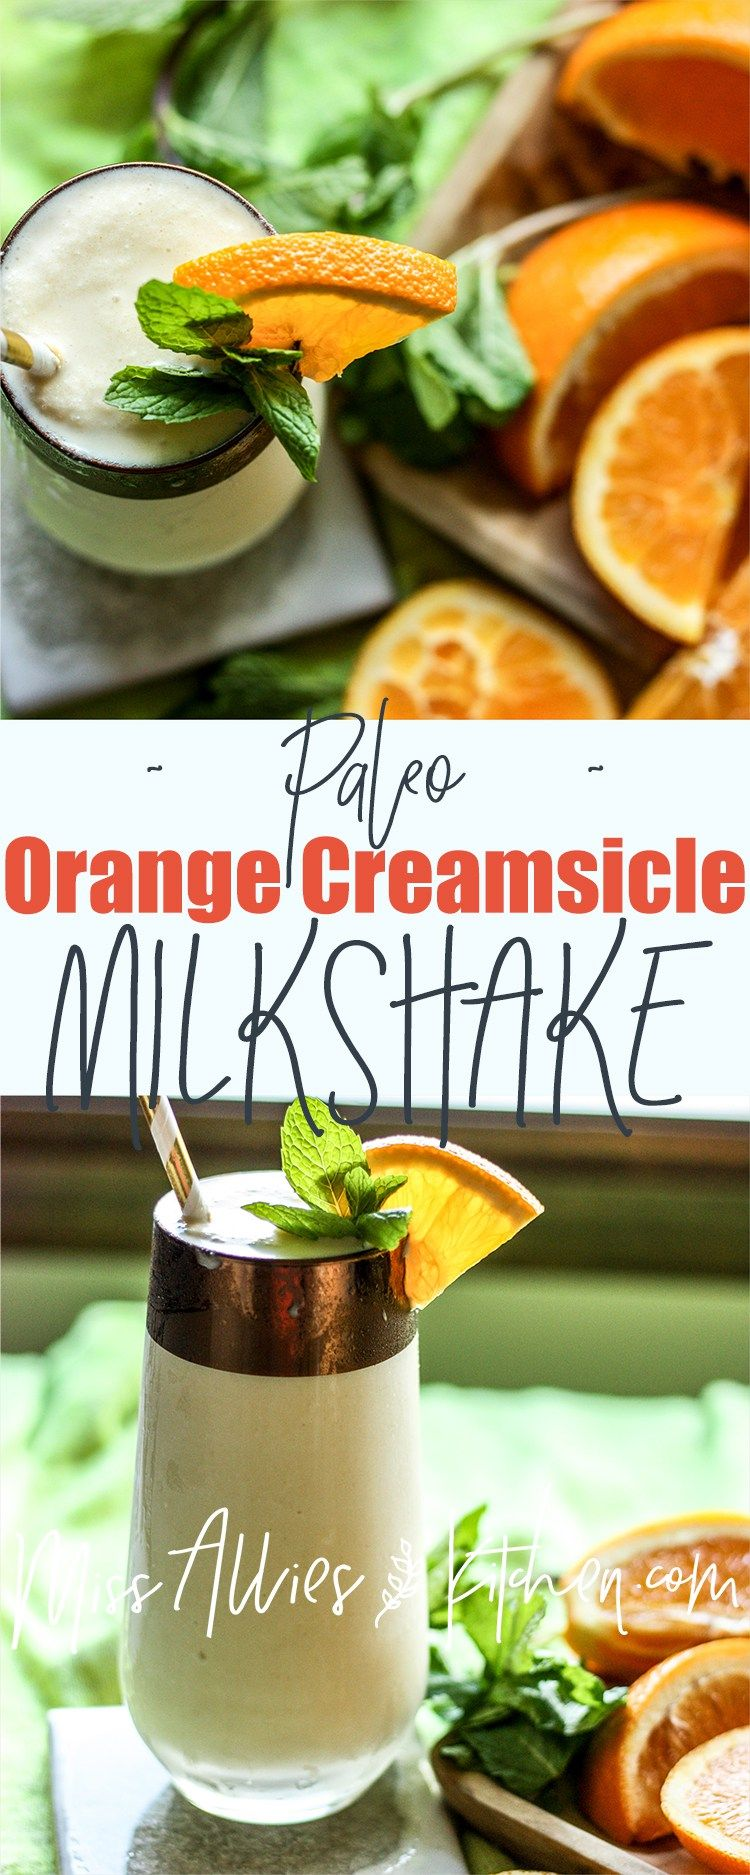 orange creamsicle milkshake recipe orange creamsicle milkshake